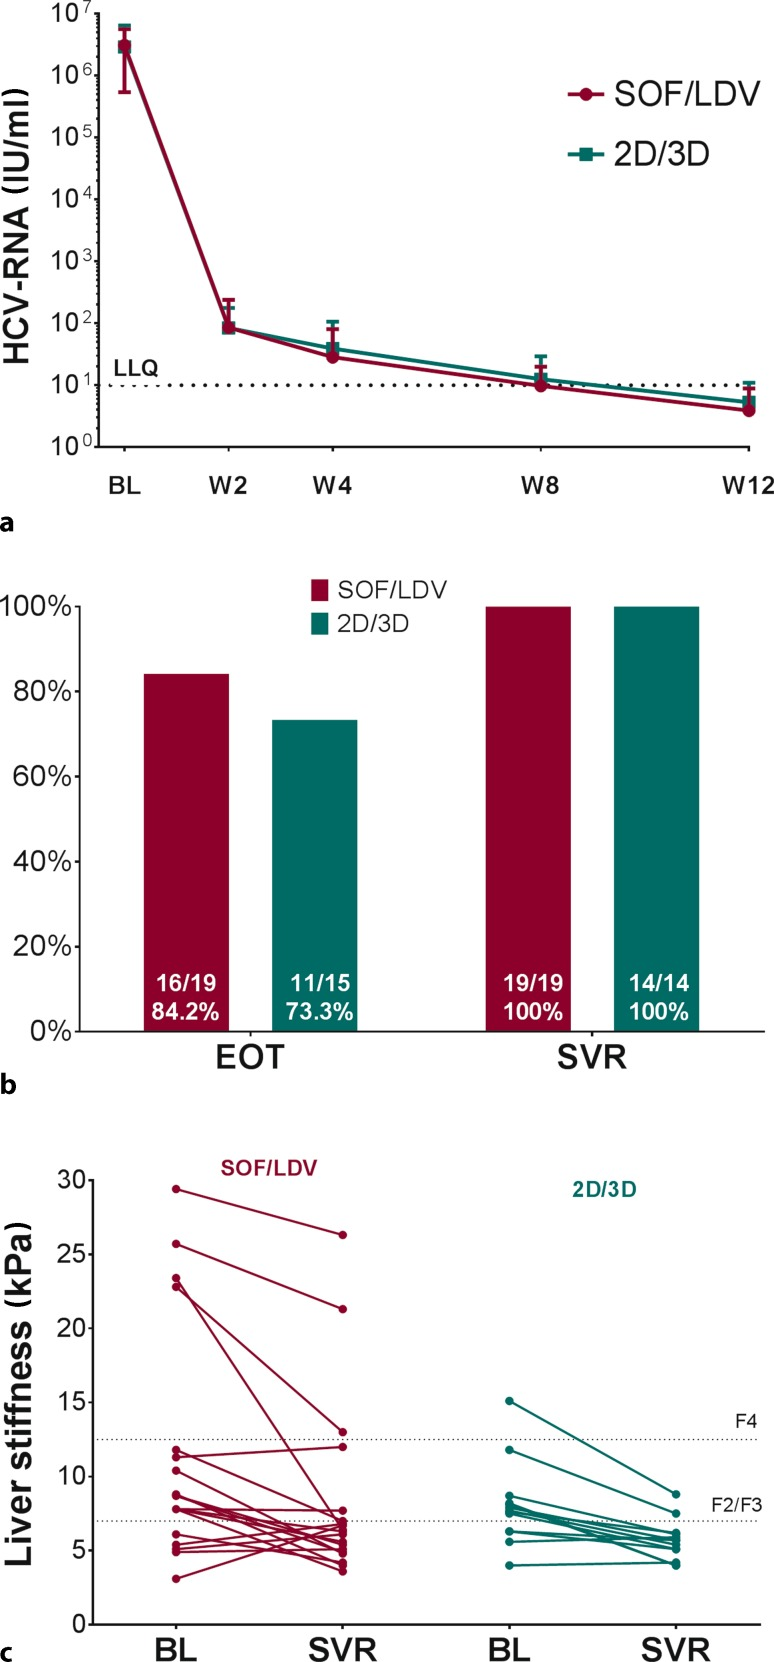 Treatment response. a Viral kinetics of HCV-RNA at baseline and during therapy (weeks 2 to 12) are shown as mean ± standard error of the mean at the respective time points for SOF/LDV and 2D/3D, respectively. b Proportion of patients with end of treatment negativity and SVR after cessation of therapy are shown for SOF/LDV and 2D/3D, respectively. c Changes in liver stiffness from baseline to follow-up (evaluated at SVR) are depicted for SOF/LDV and for 2D/3D patients, respectively. SOF sofosbuvir, LDV ledipasvir, 2D ritonavir boosted ombitasvir/paritaprevir, 3D ritonavir boosted ombitasvir/paritaprevir/dasabuvir, BL baseline, W treatment week, EOT end of treatment, SVR sustained virologic response, TND target not detectable